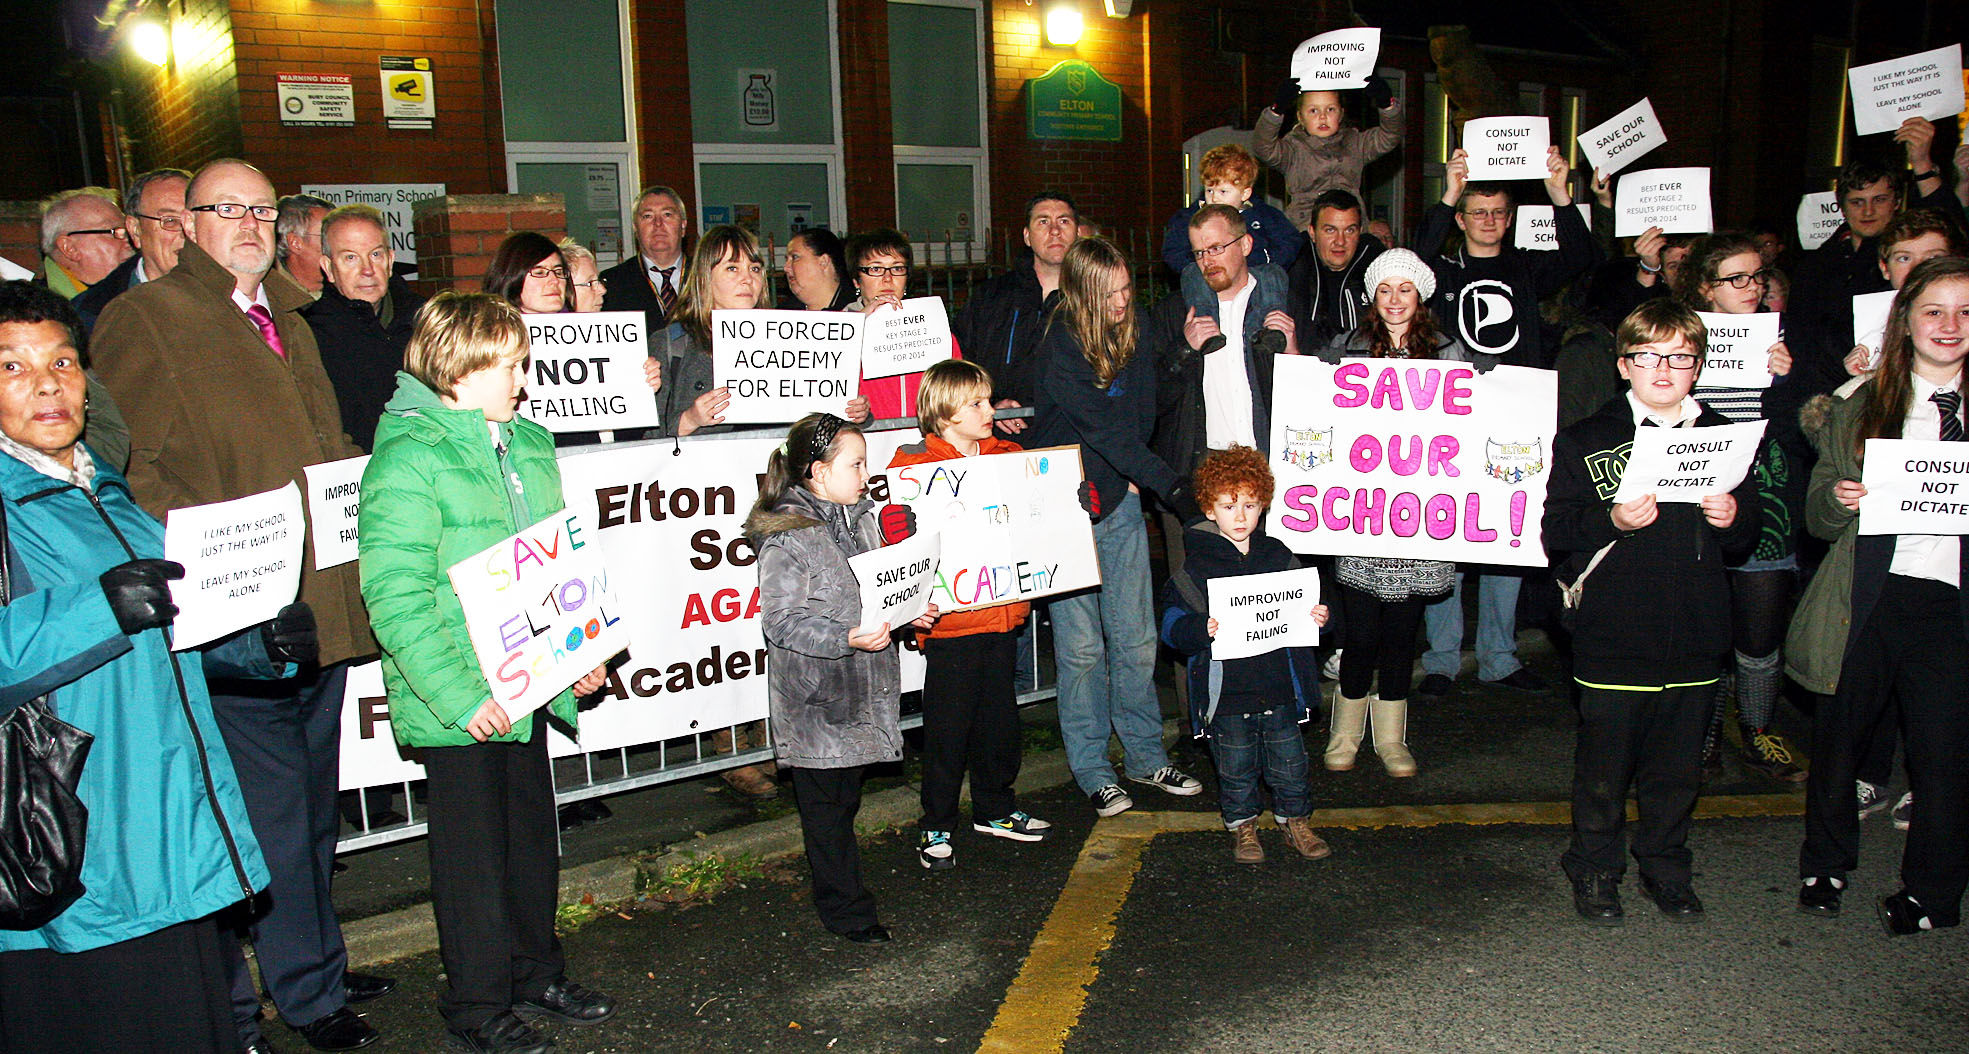 The protest held outside Elton Primary School